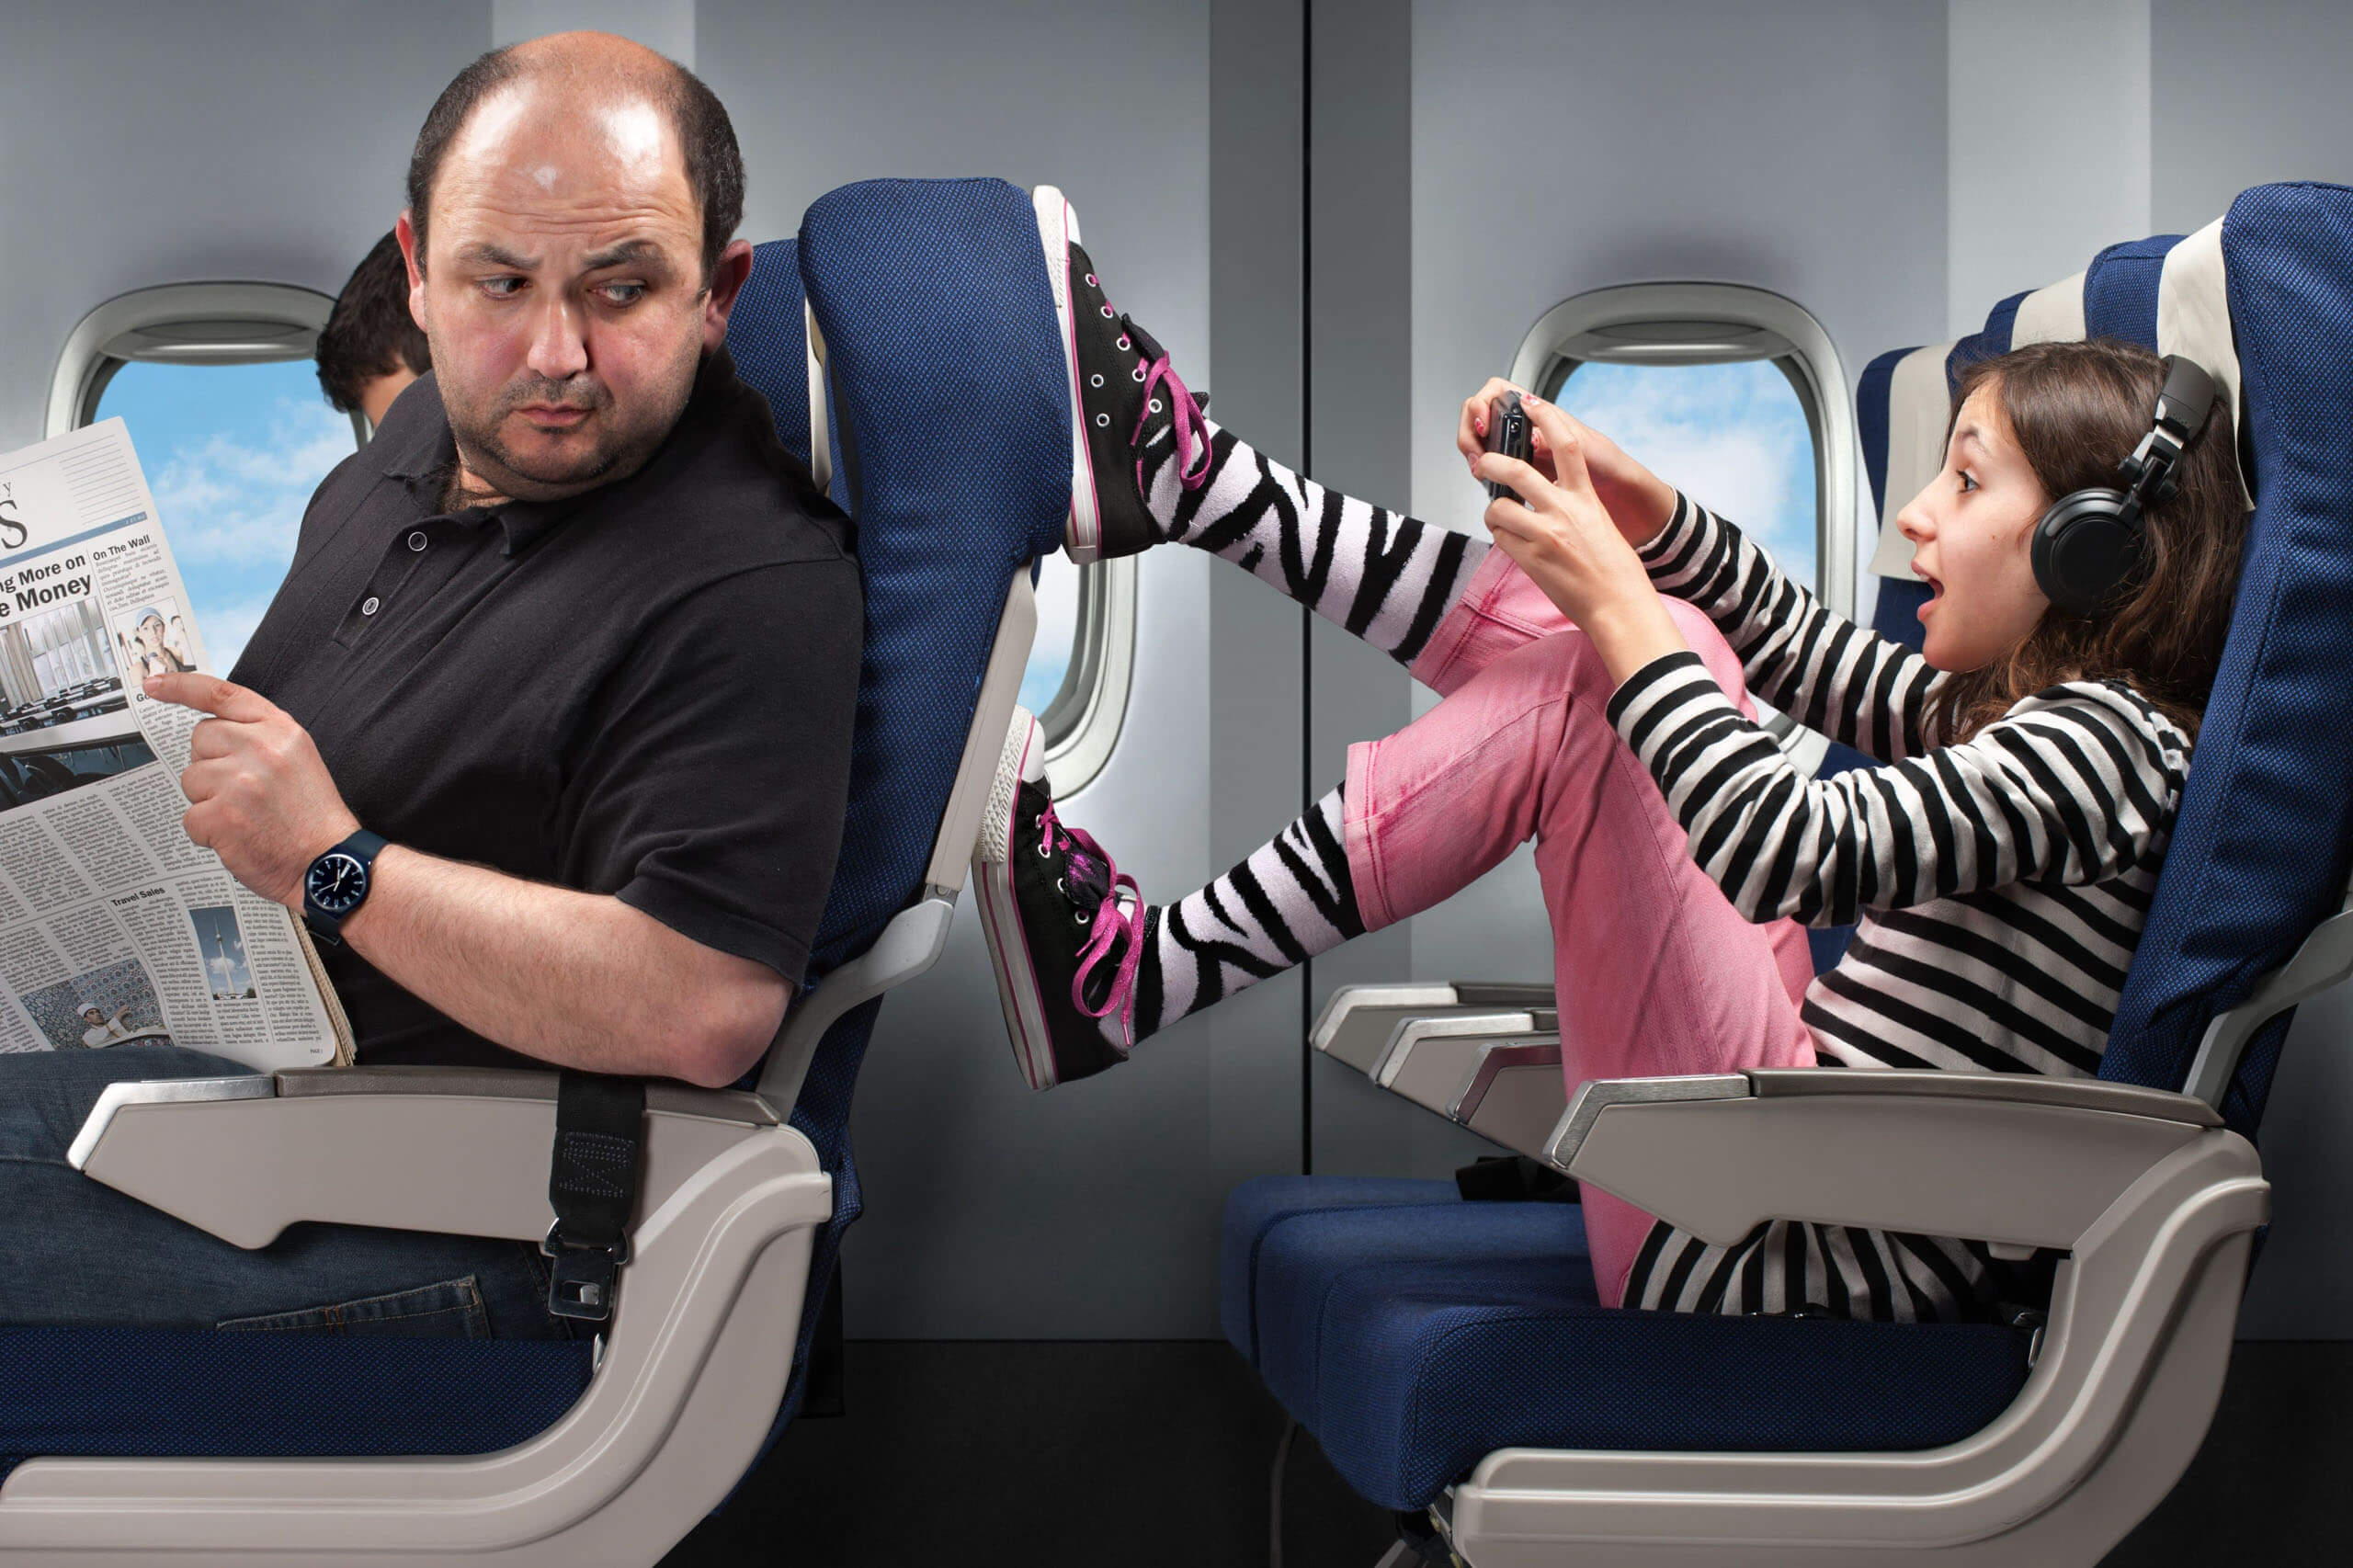 Young girl kicking aeroplane seat